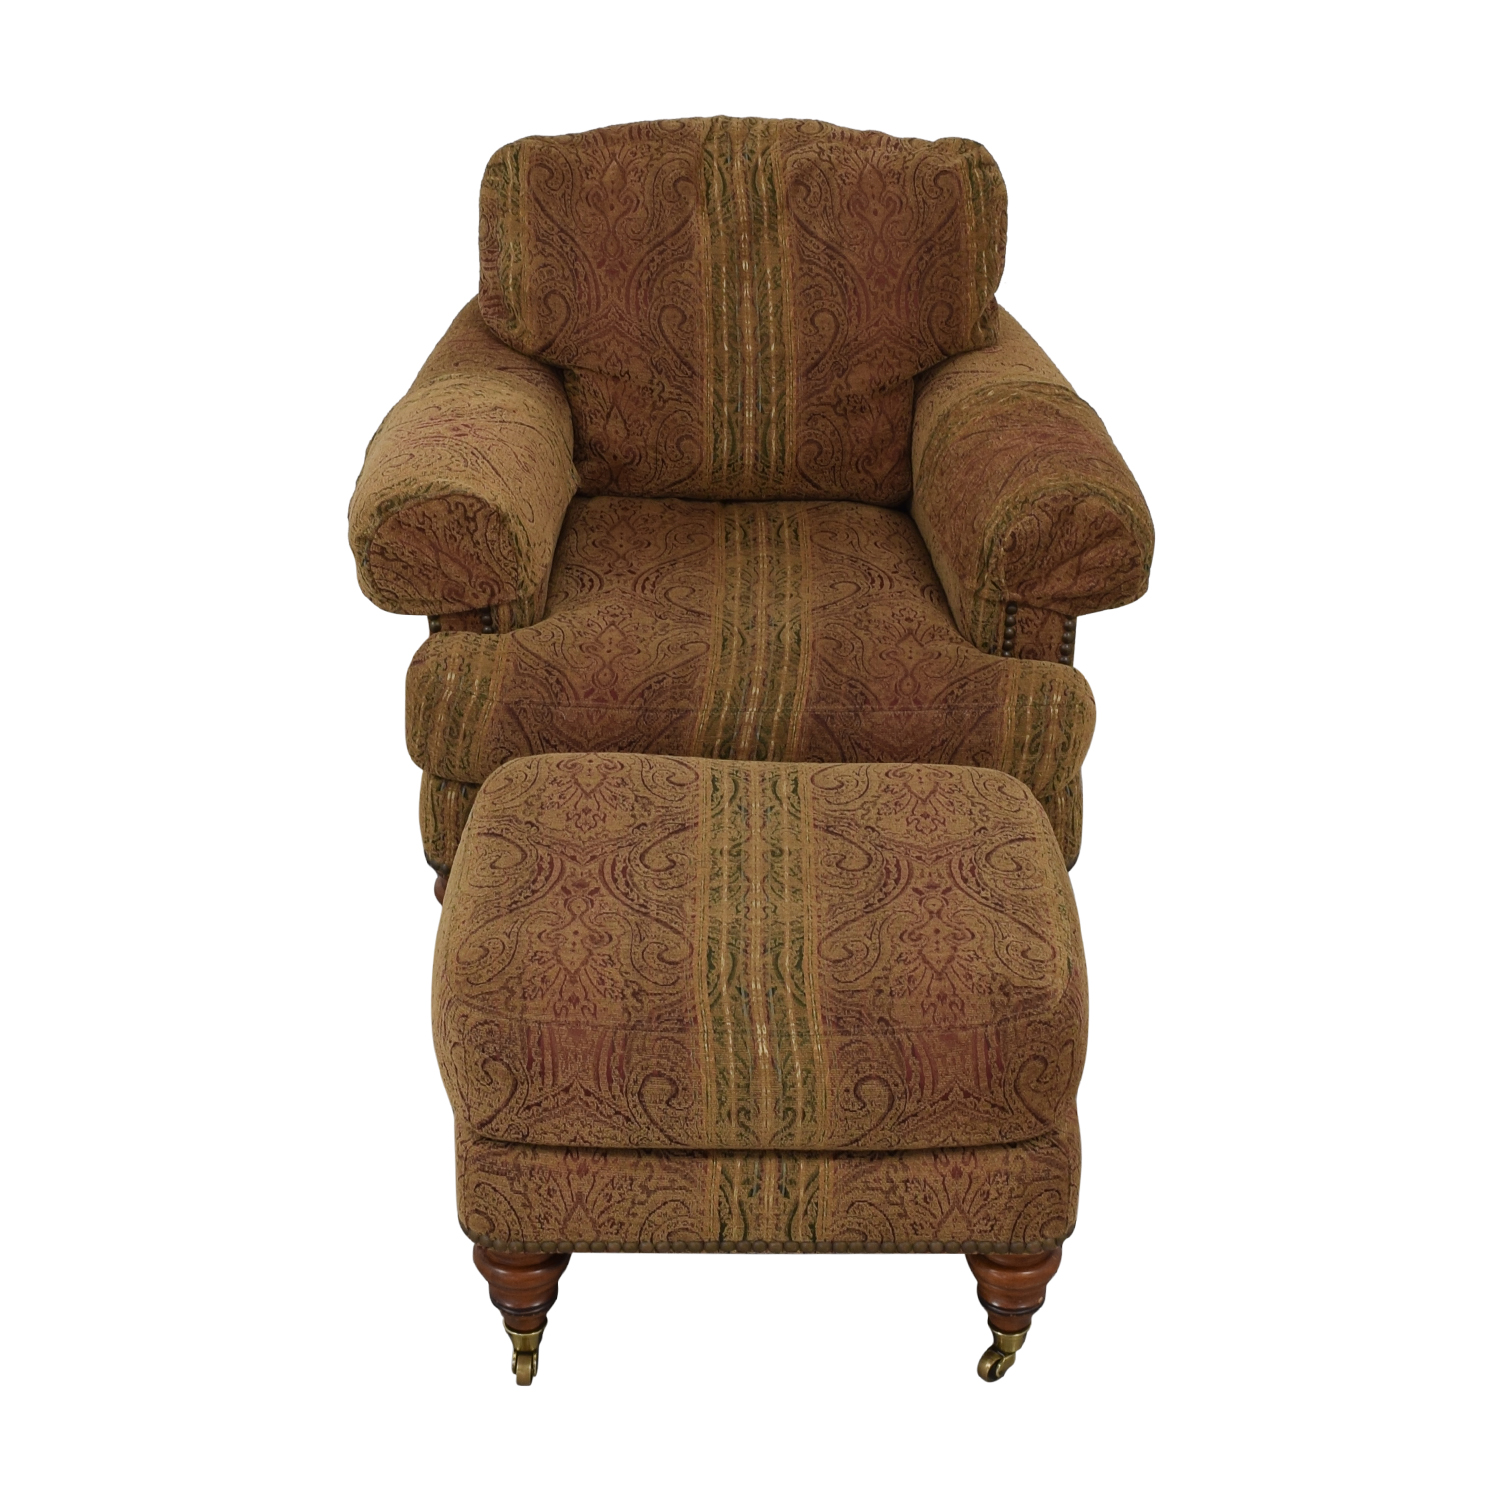 shop Lillian August Upholstered Chair with Ottoman Lillian August